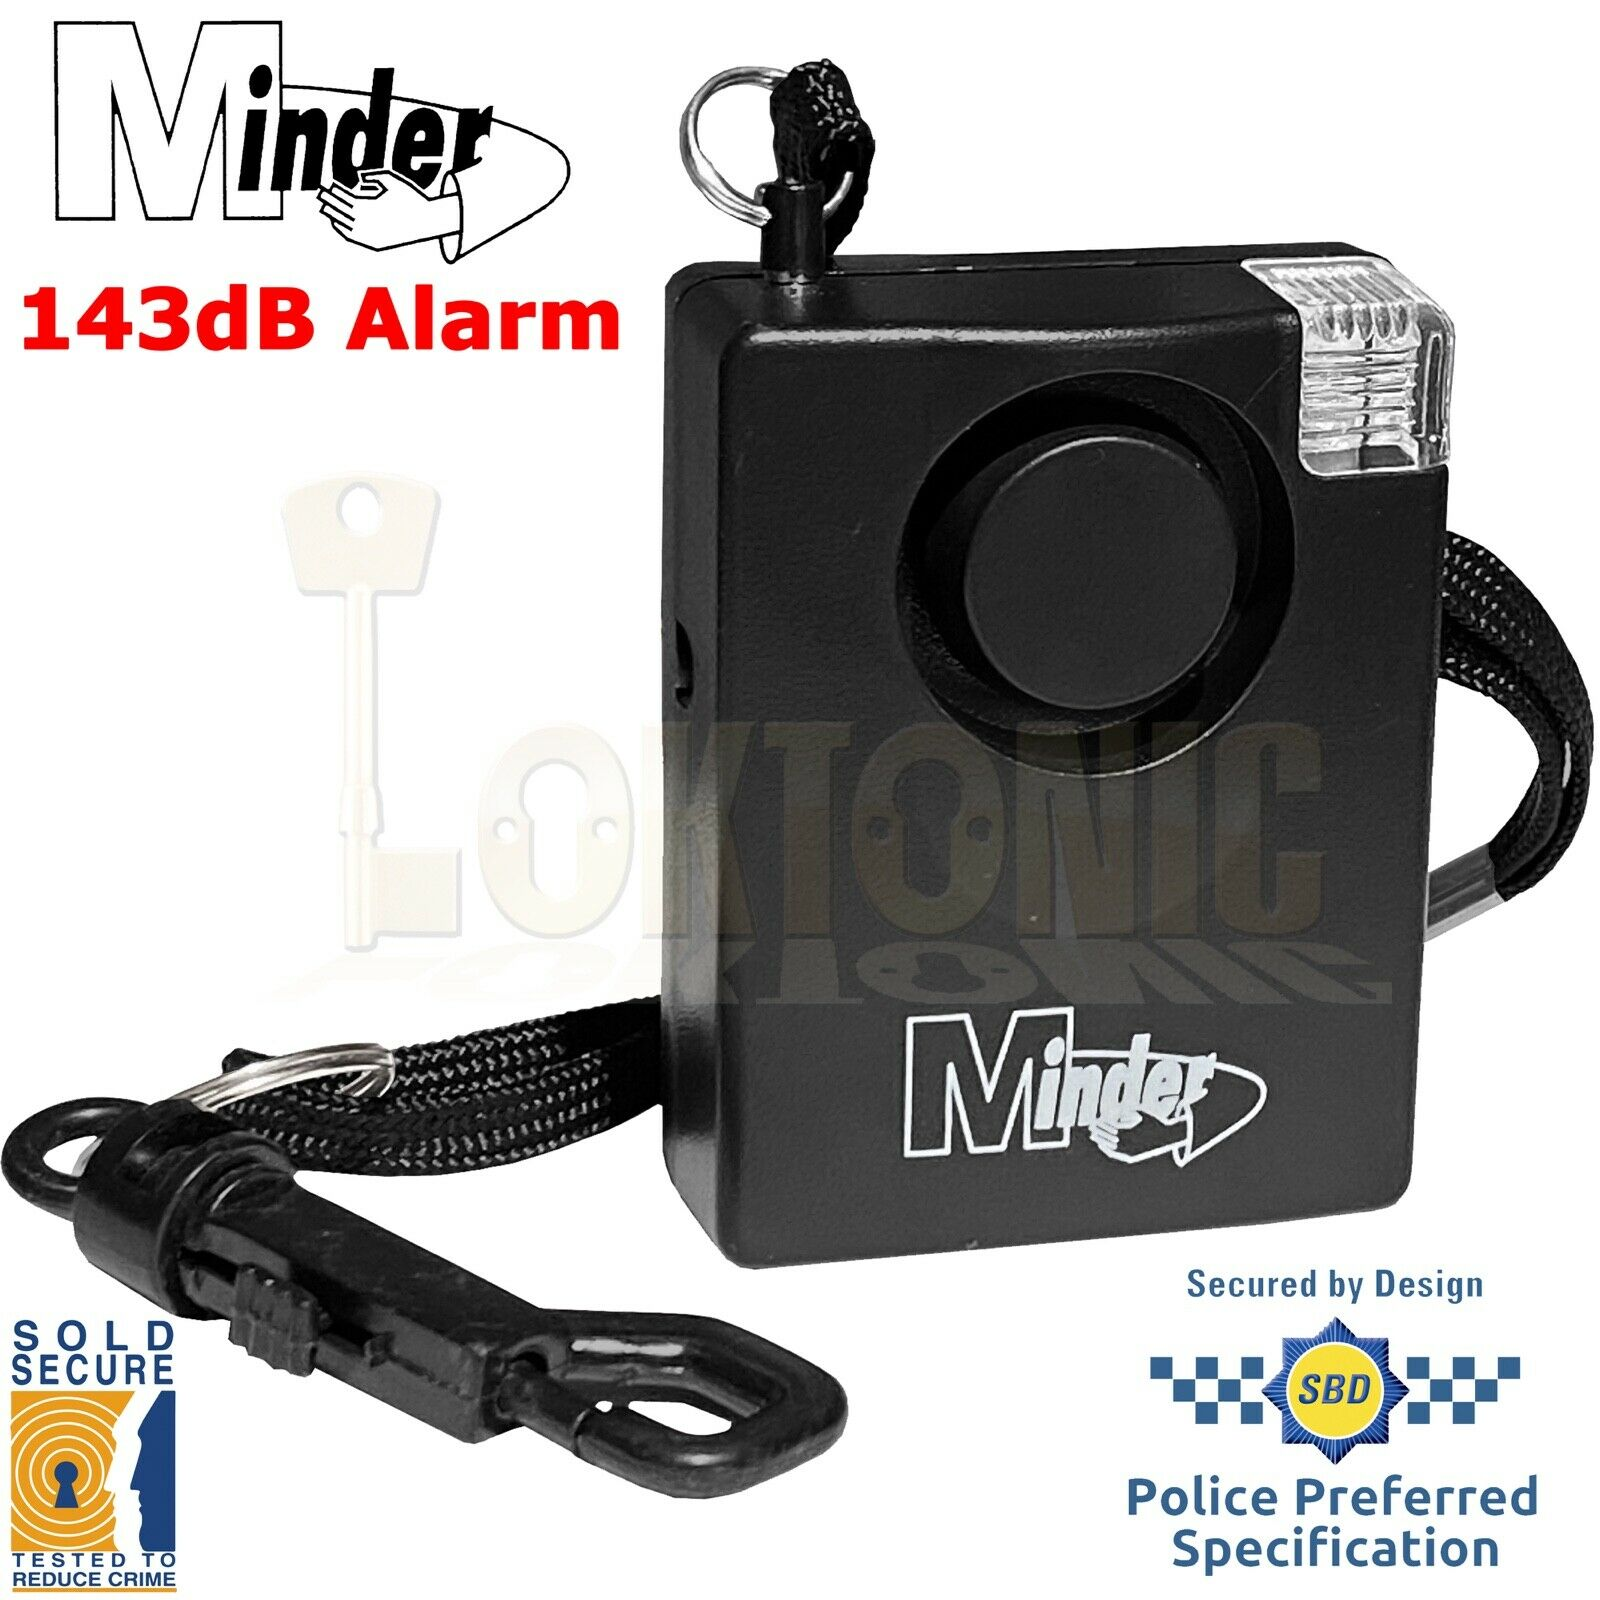 Minder Personal 143dB Sold Secure Panic Rape Attack Alarm Strobe Torch 5yr Warra